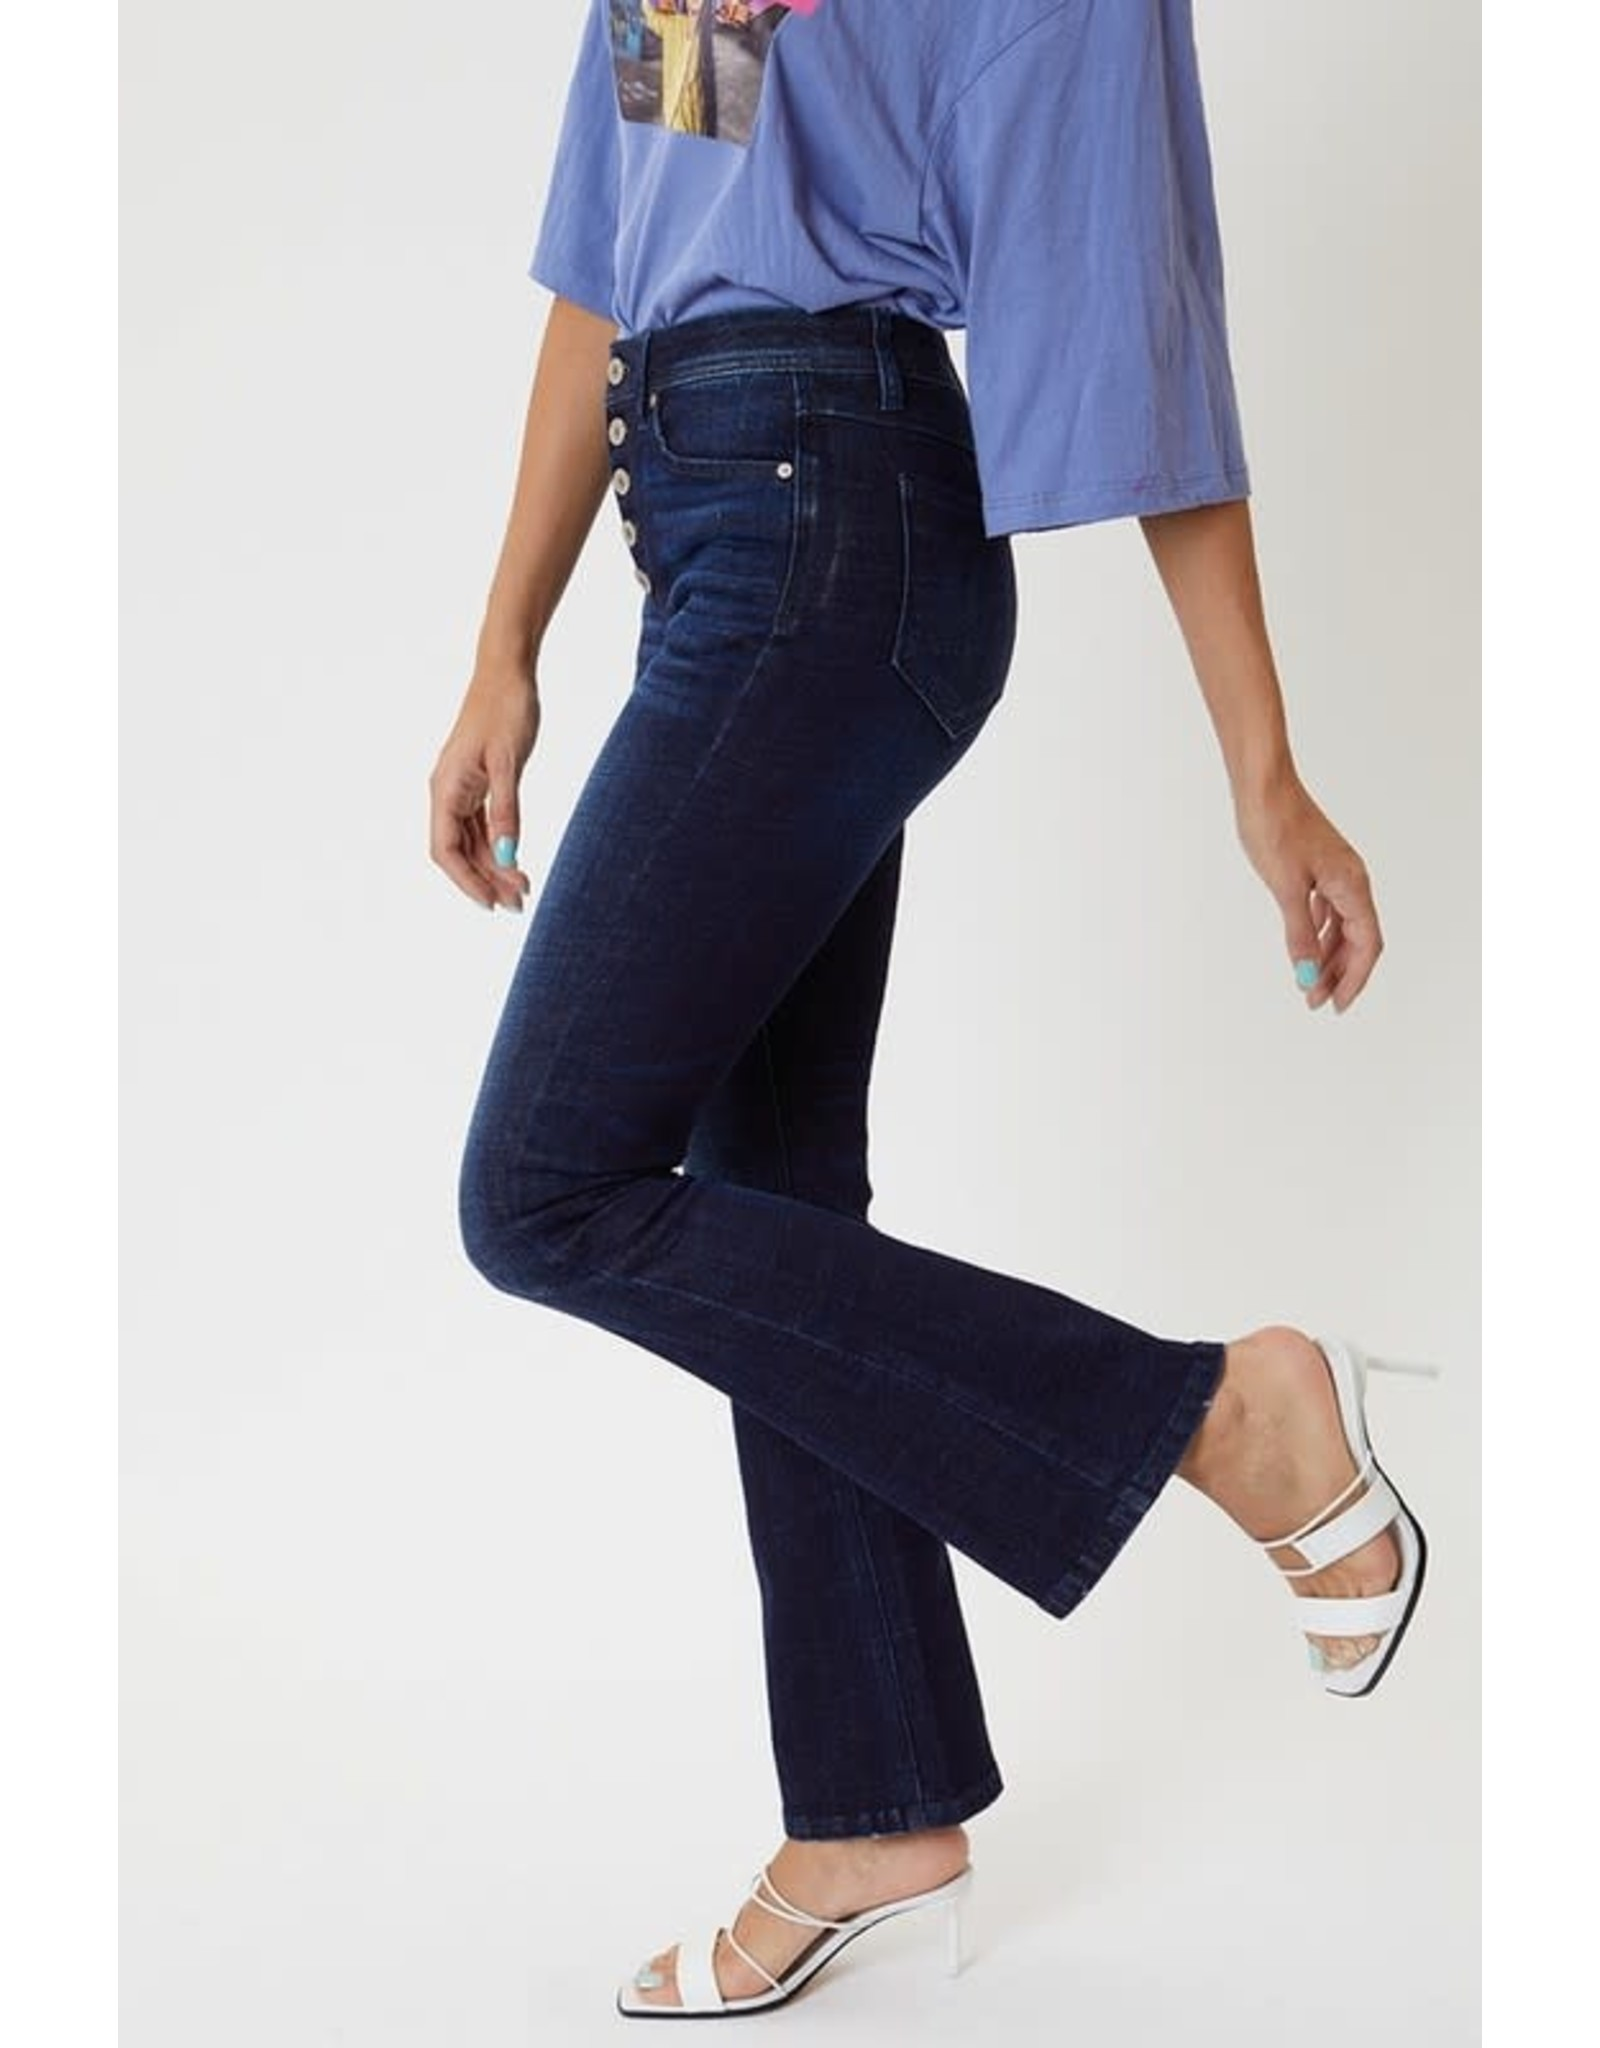 Blaire High Rise Flare Jeans - Petite